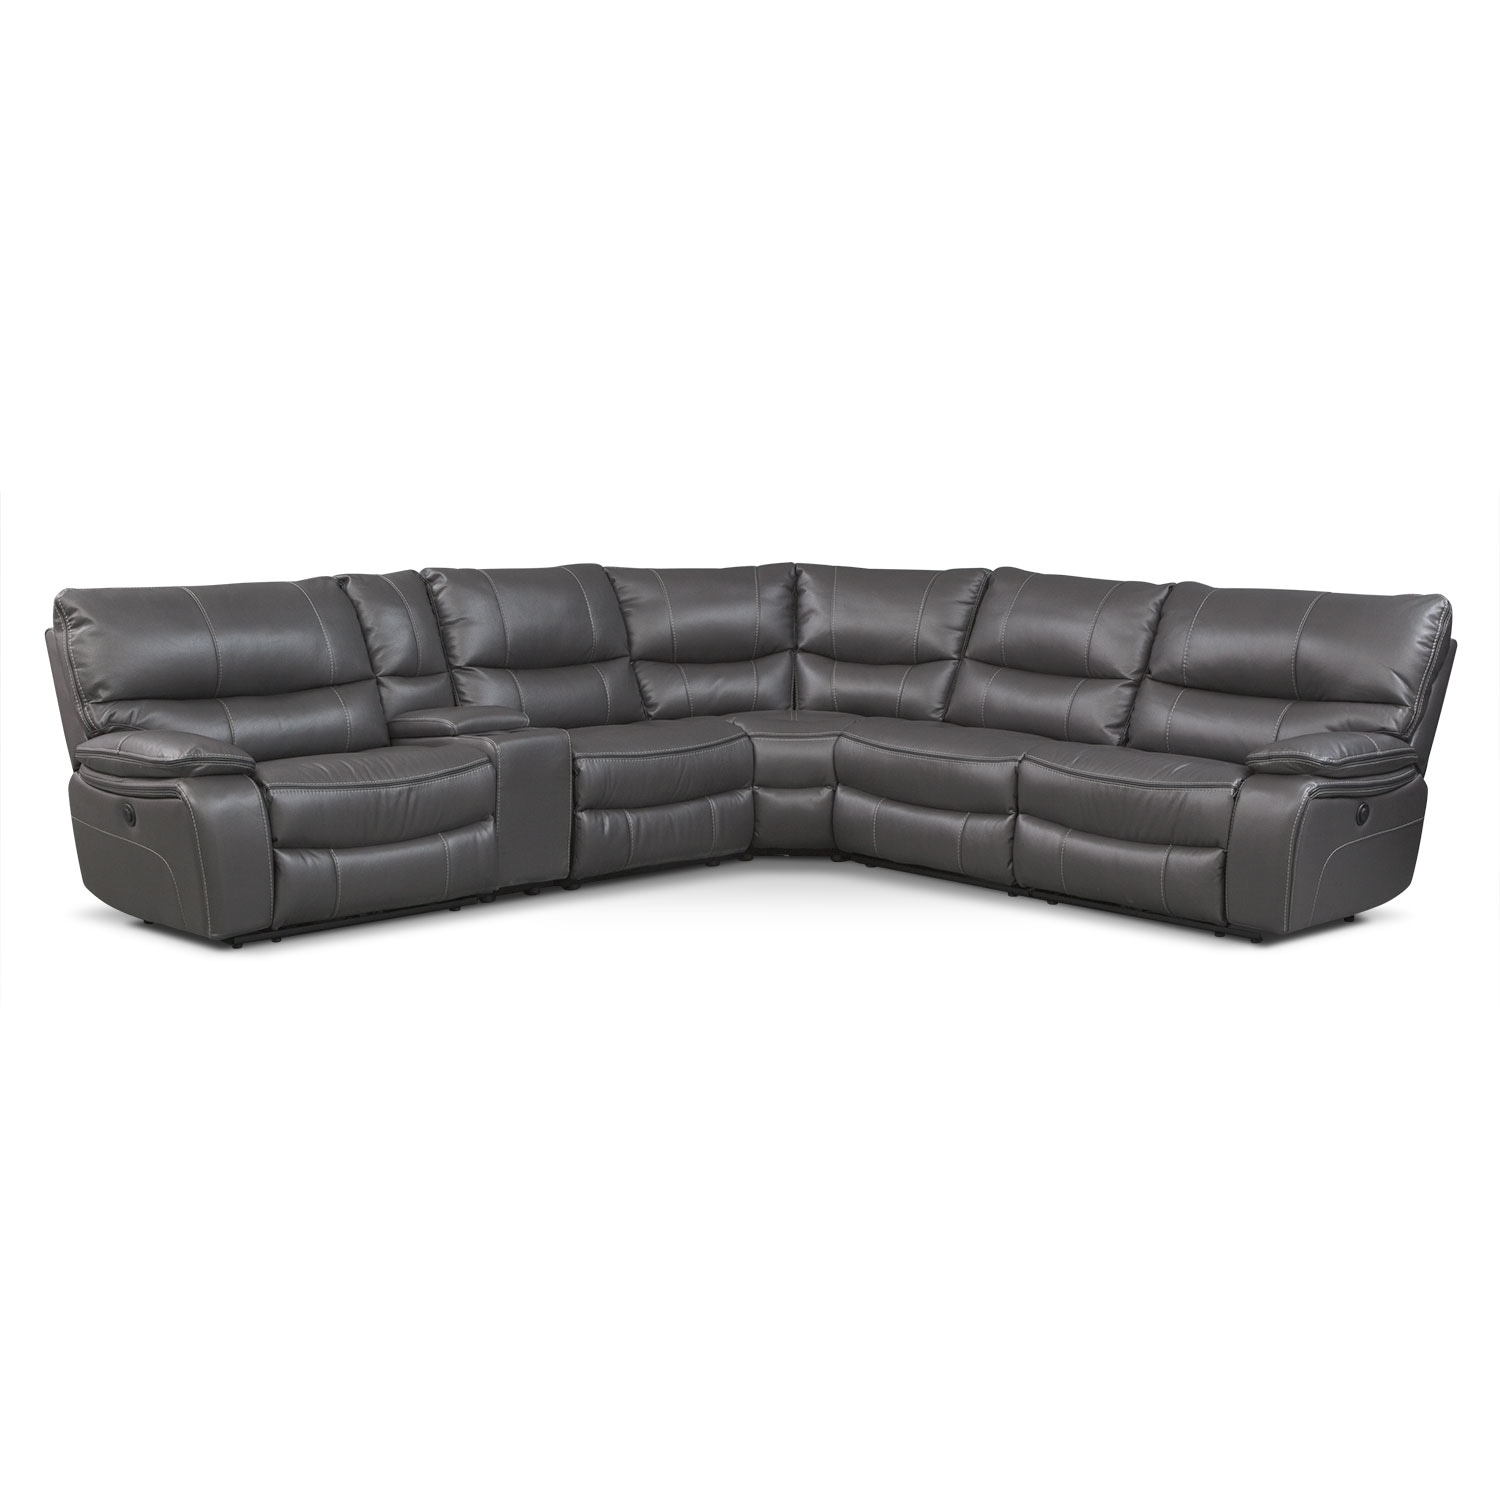 orlando sectional sofa gray microfiber ideas sofas explore 4 of 10 photos